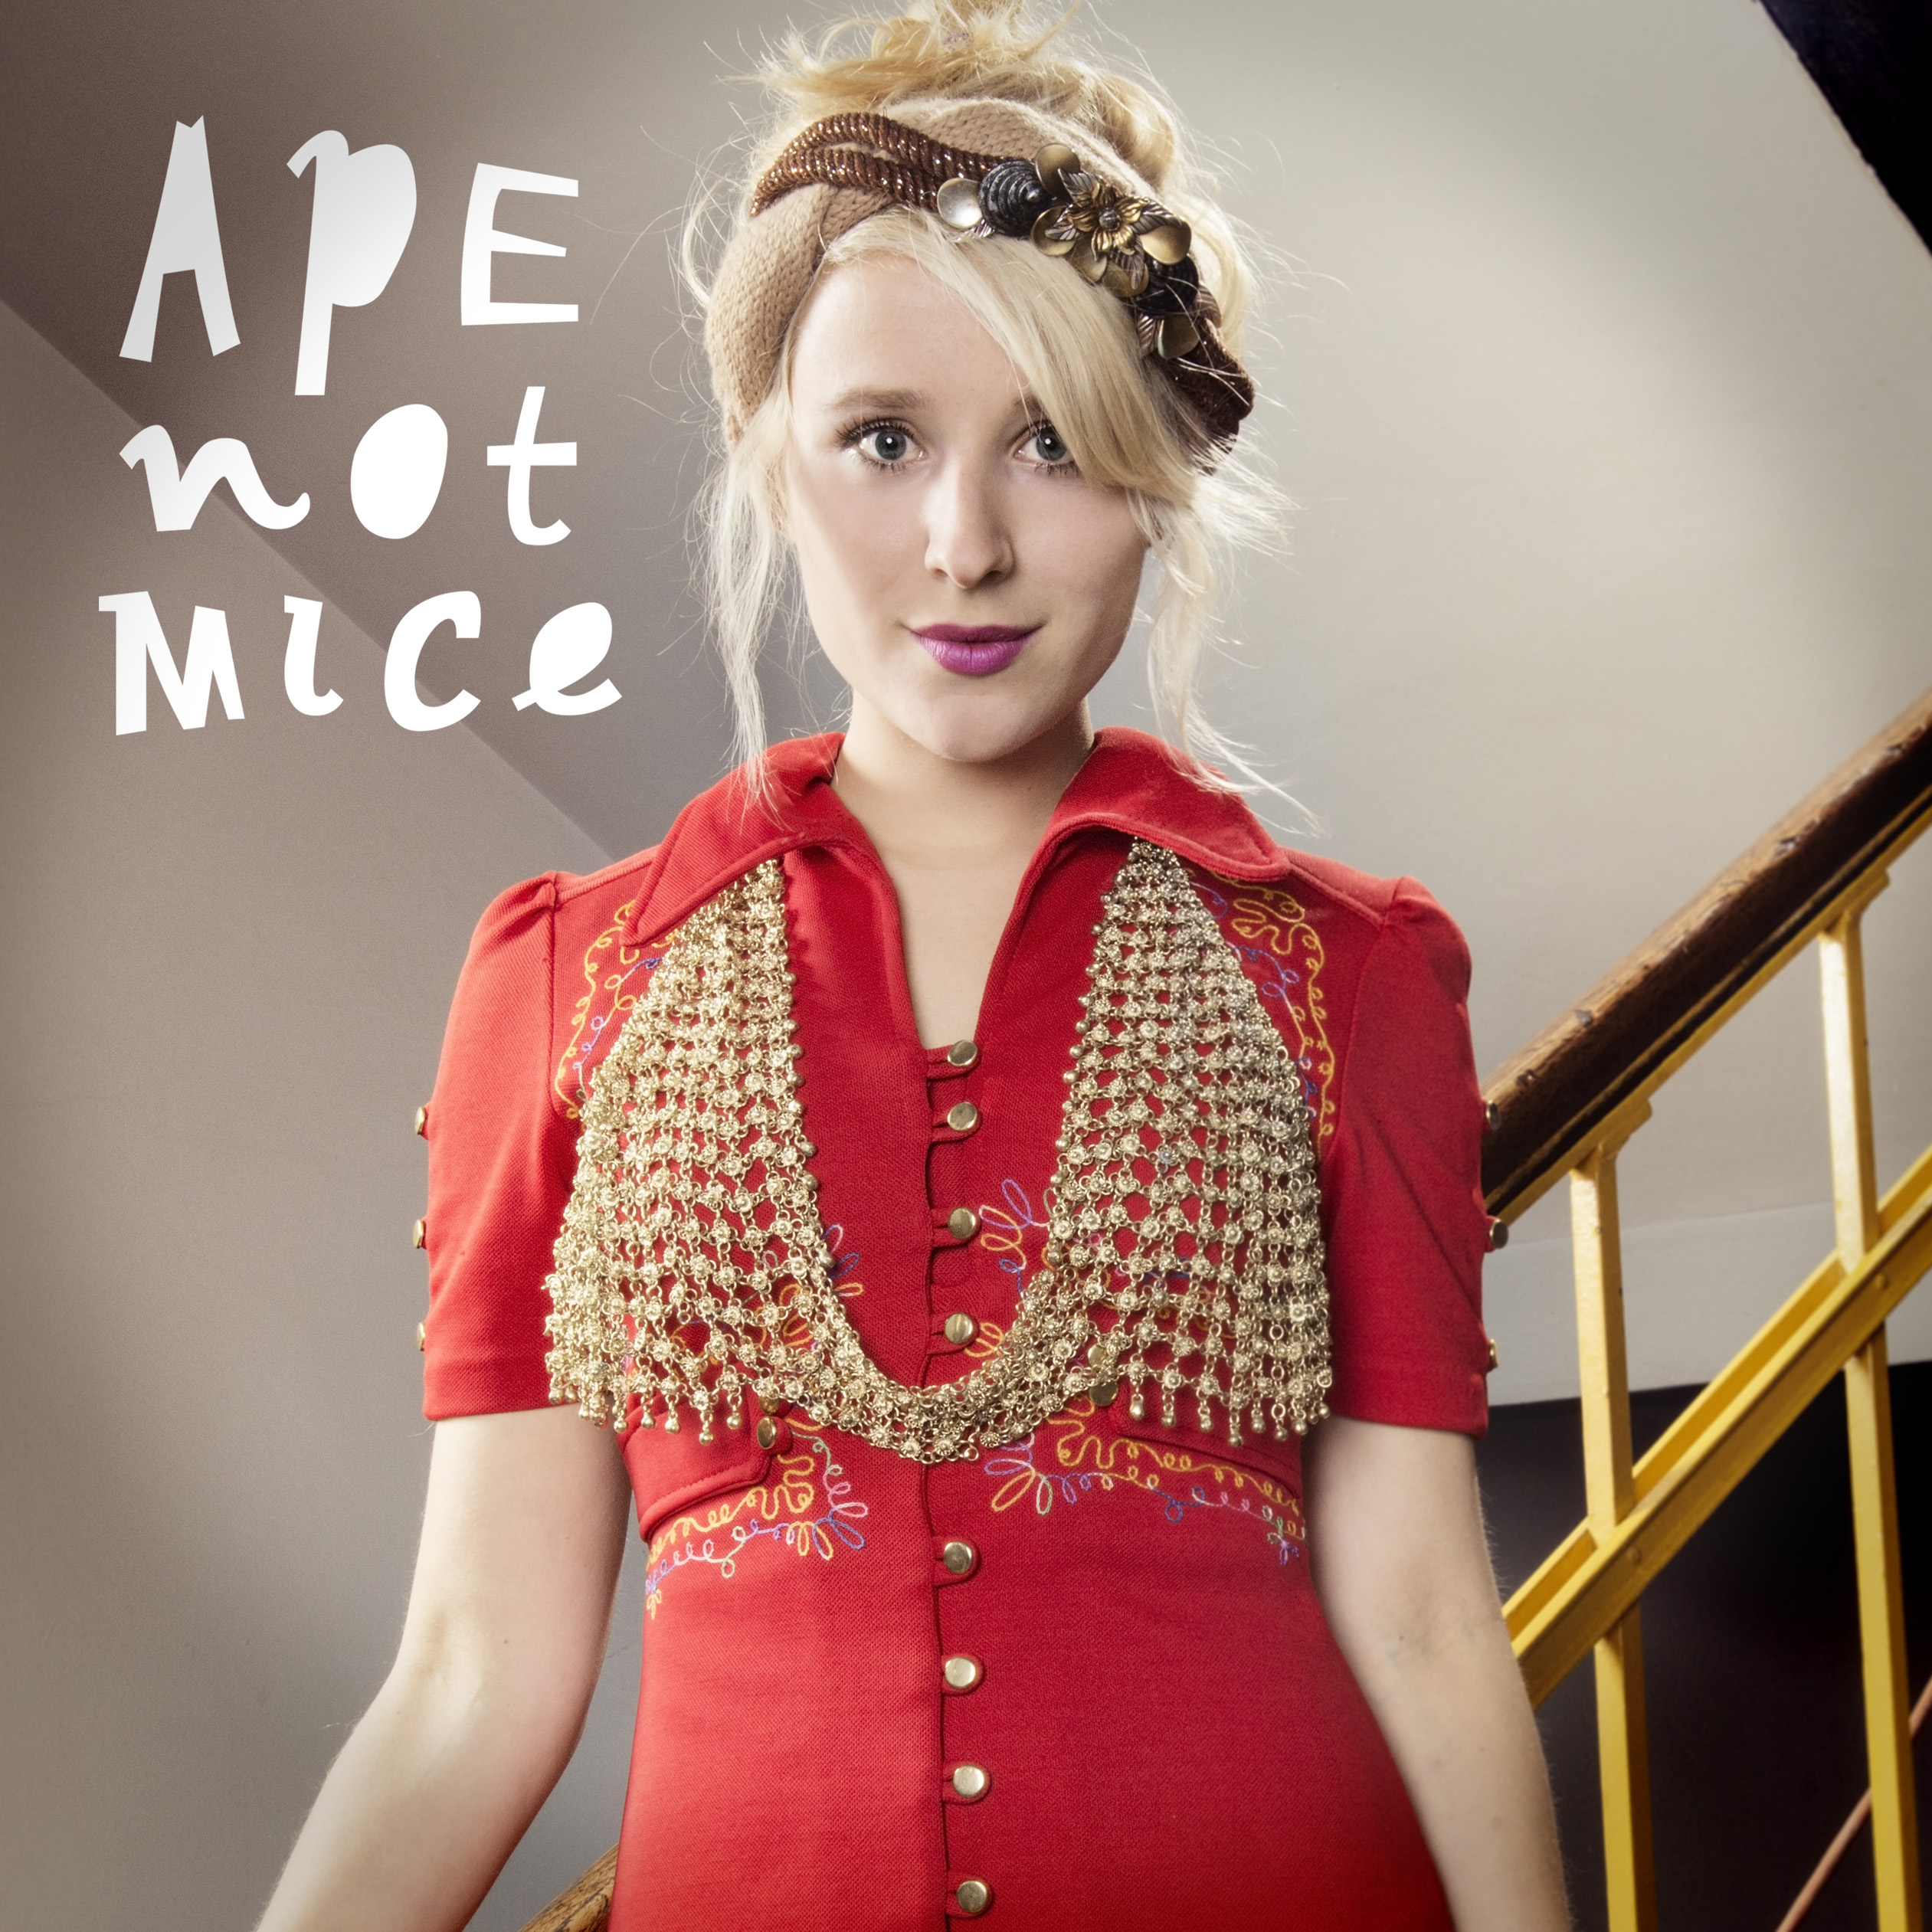 Ape Not Mice